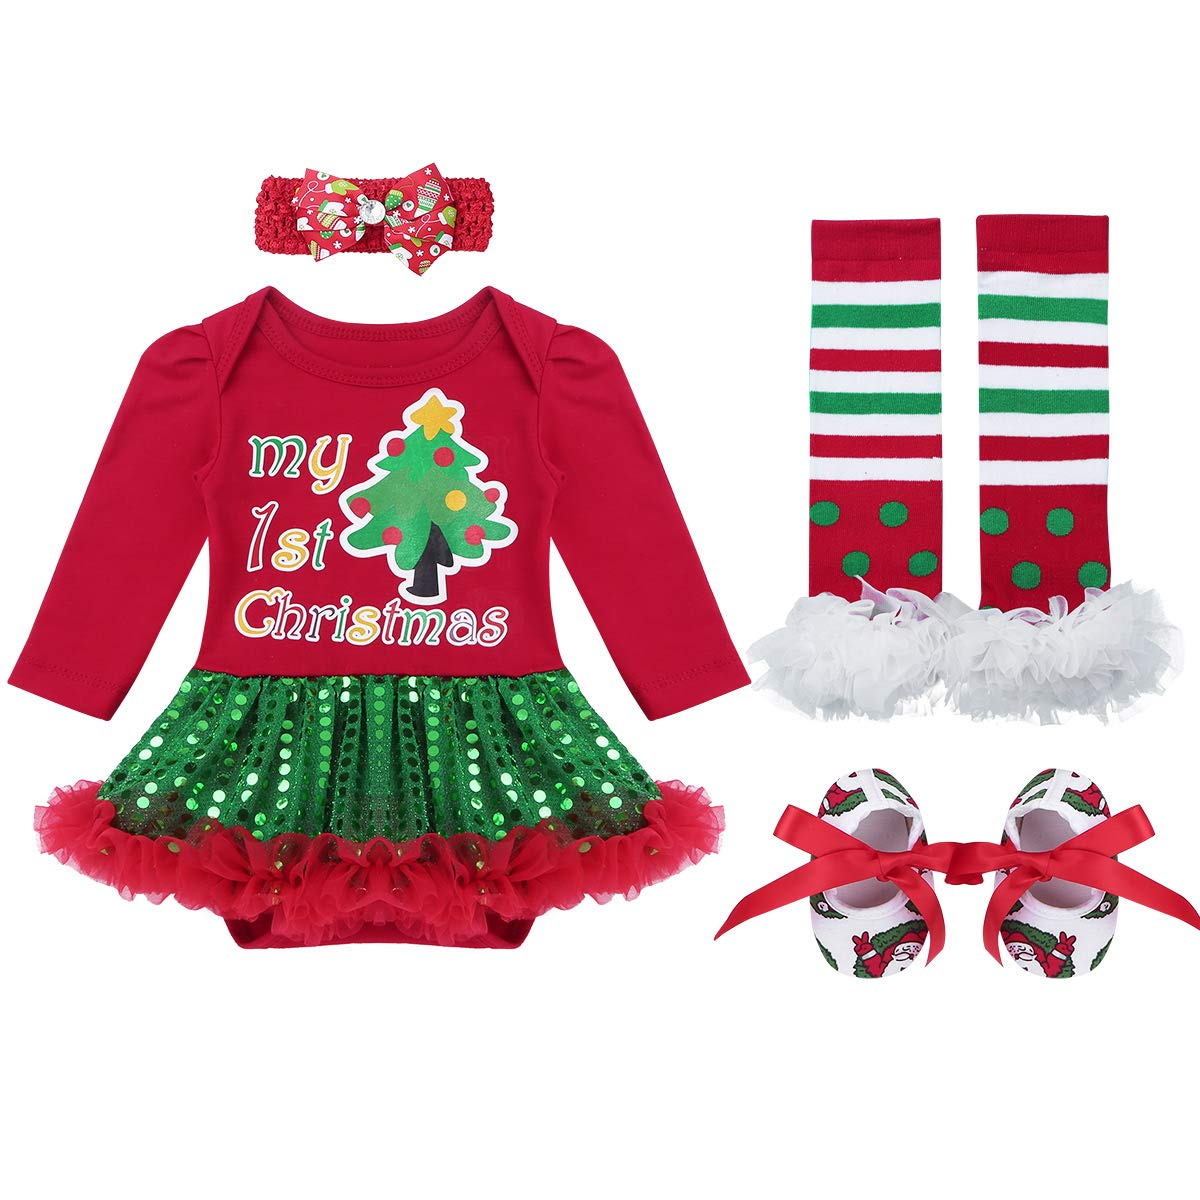 MSemis Infant Baby Girls Christmas Outfits Long Sleeves Shiny Sequins Romper Tutu Dress with Accessories Set